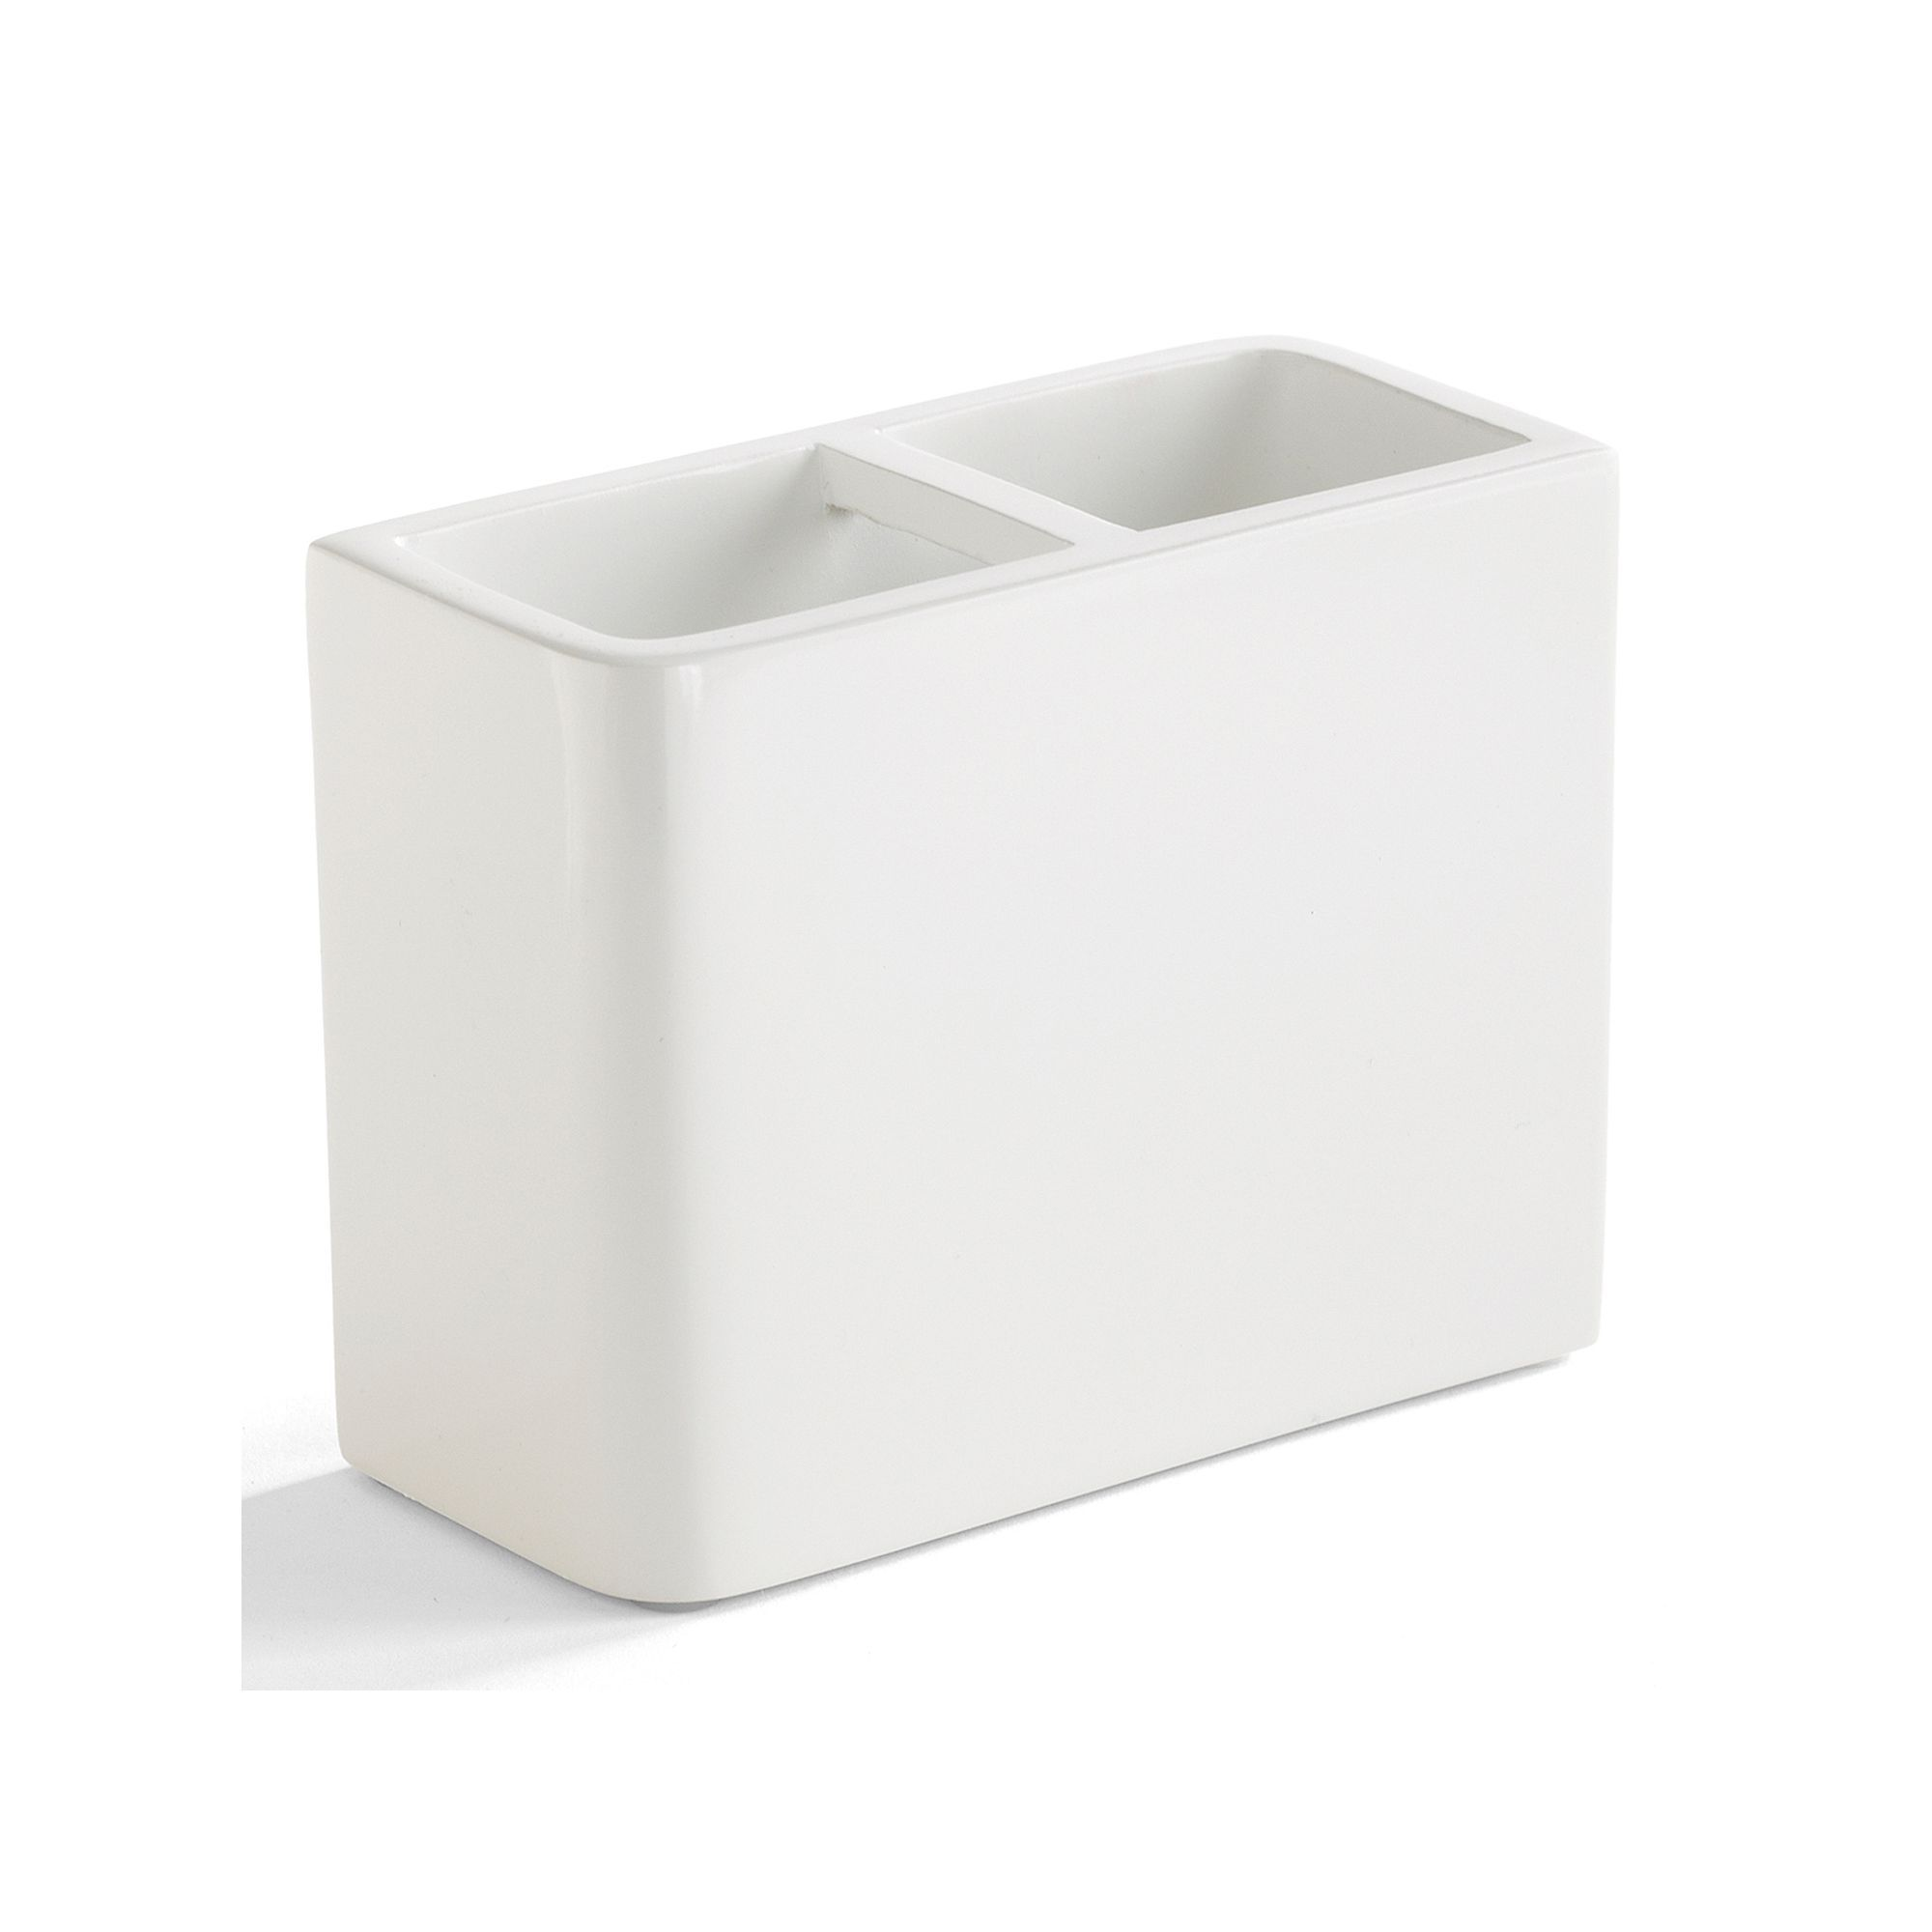 Kassatex Lacca Toothbrush Holder White Kassatex Lacca